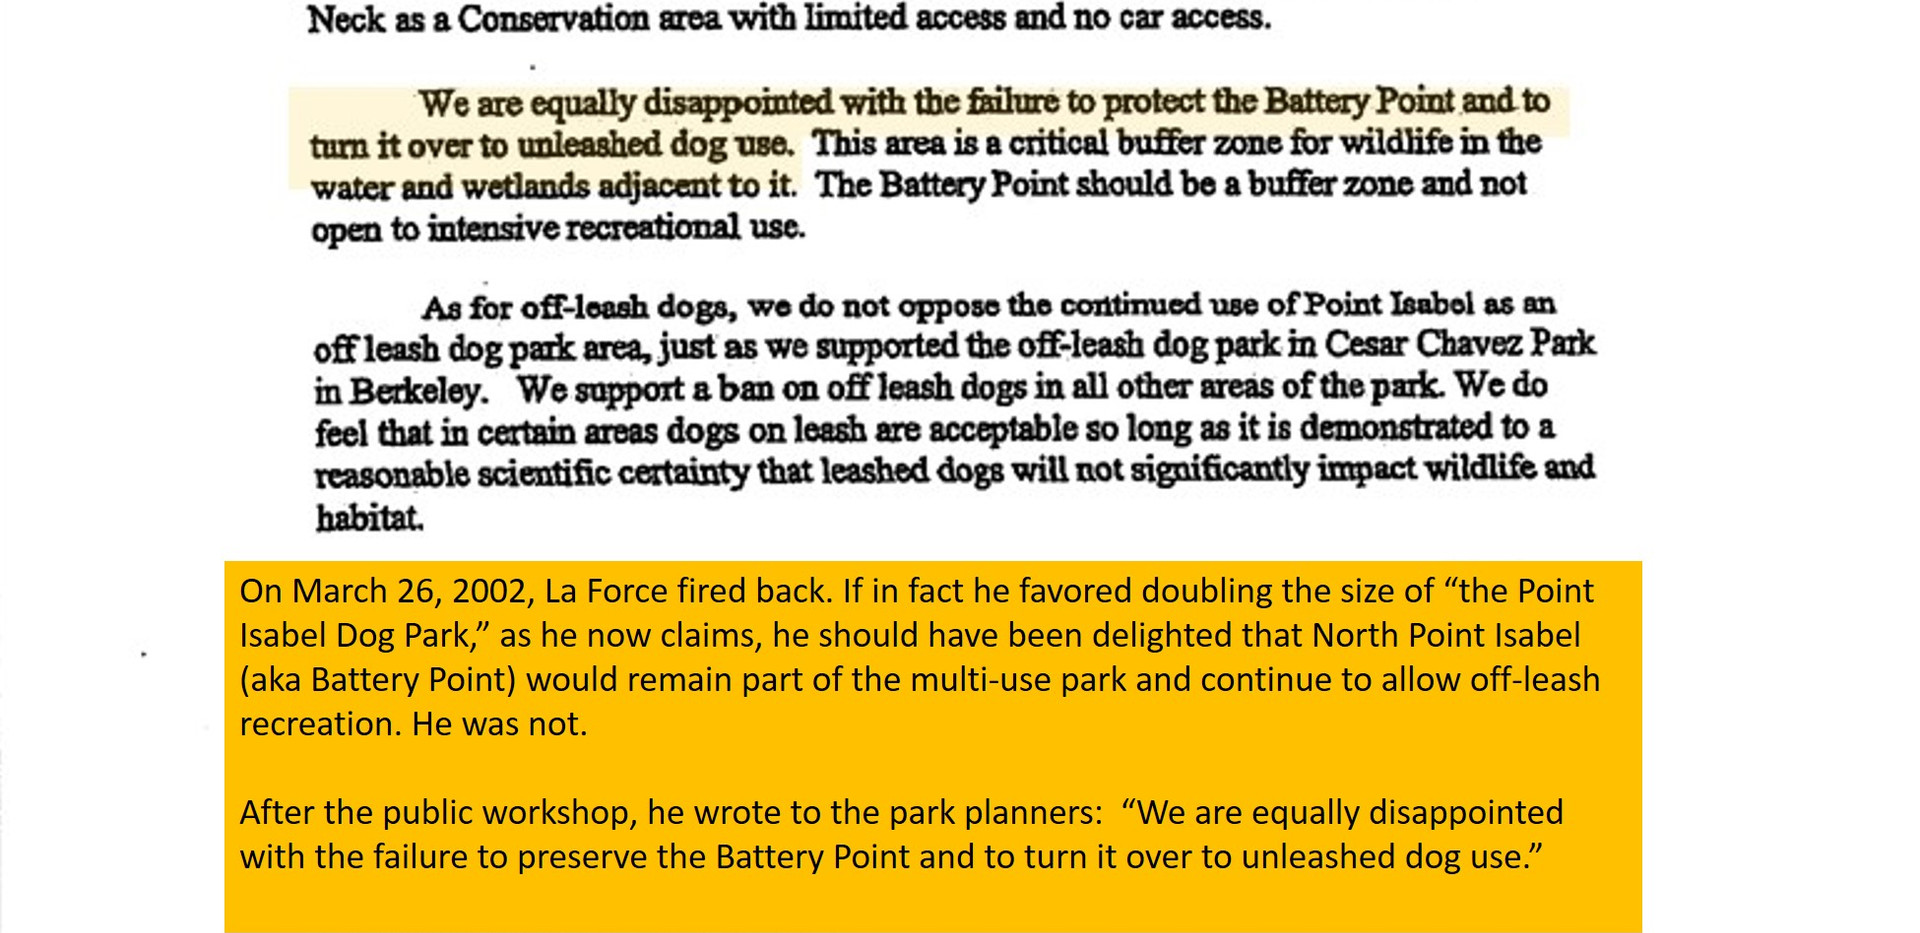 La Force was NOT happy that park planners were allowing off-leash recreation to continue on Nth PI